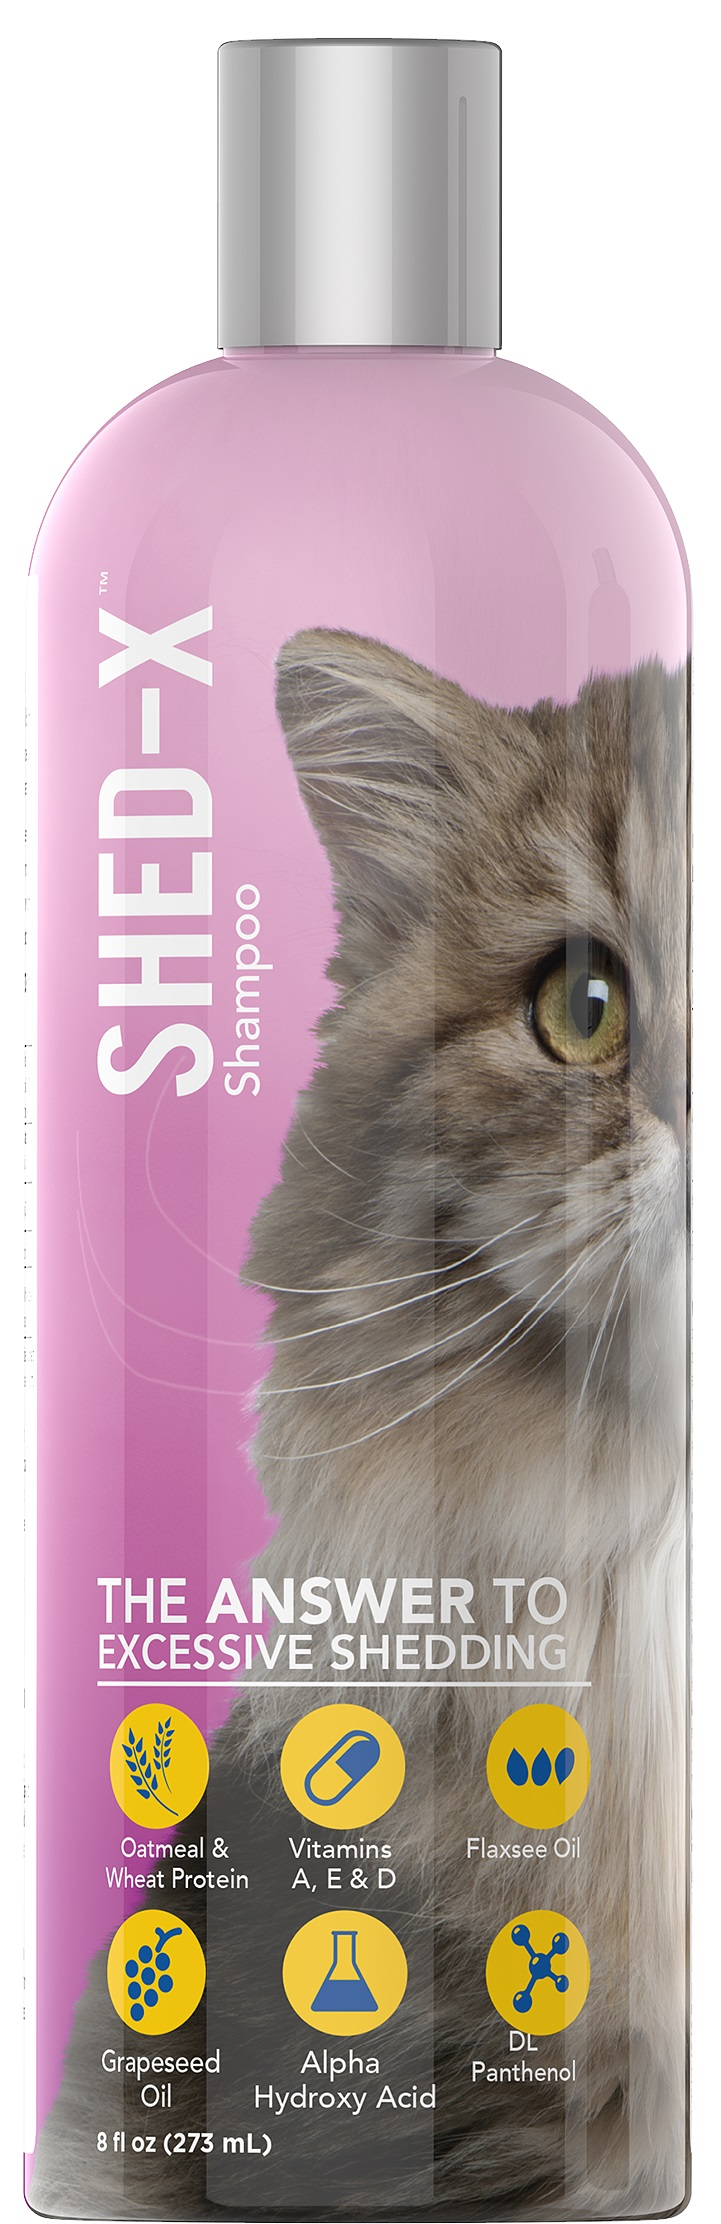 Shed-X Control Shampoo for Cats (237 ml.)